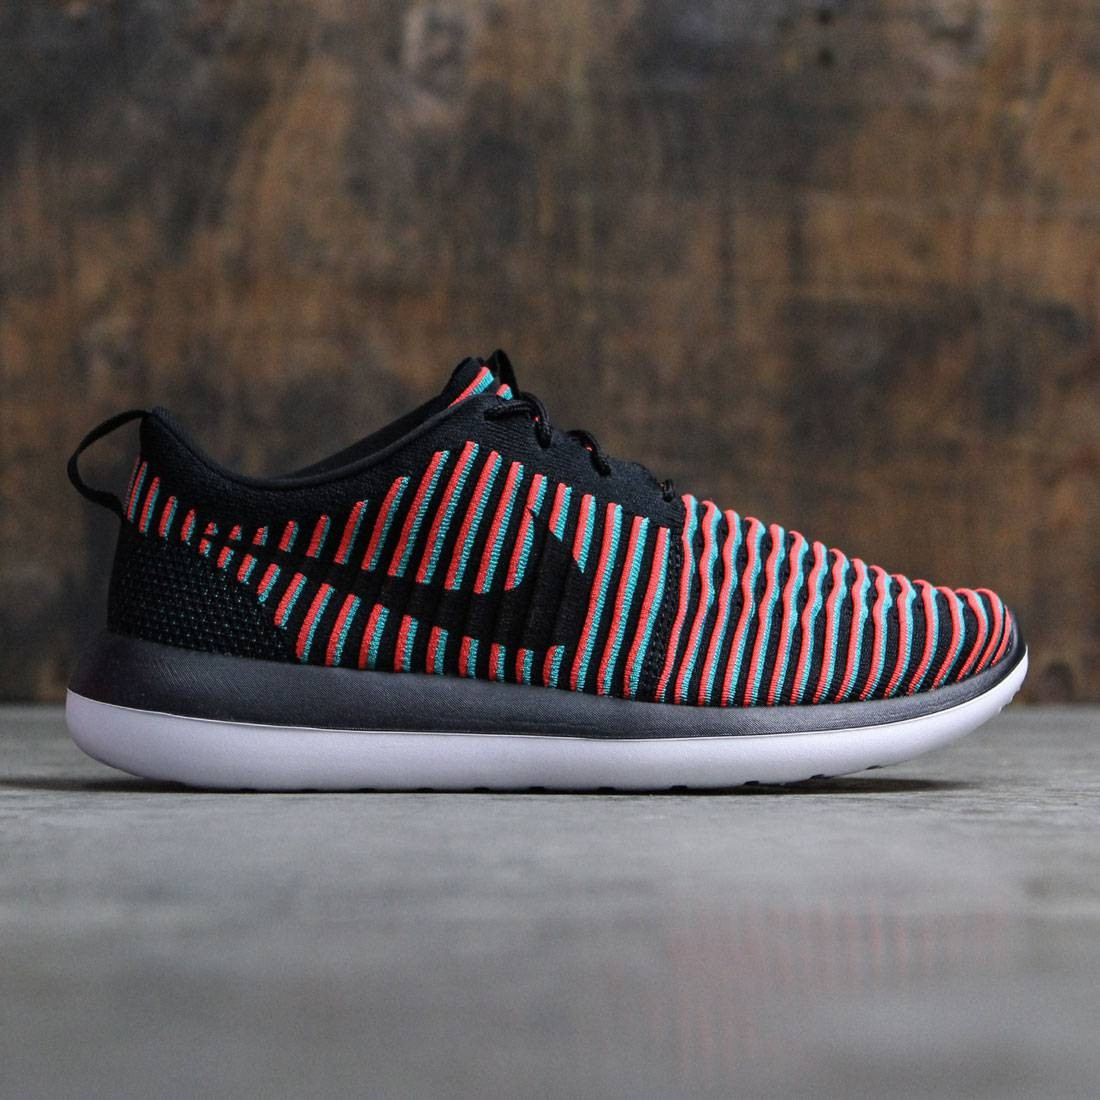 7c10052f2968 Nike Men Roshe Two Flyknit (black   black-bright crimson-clear jade)